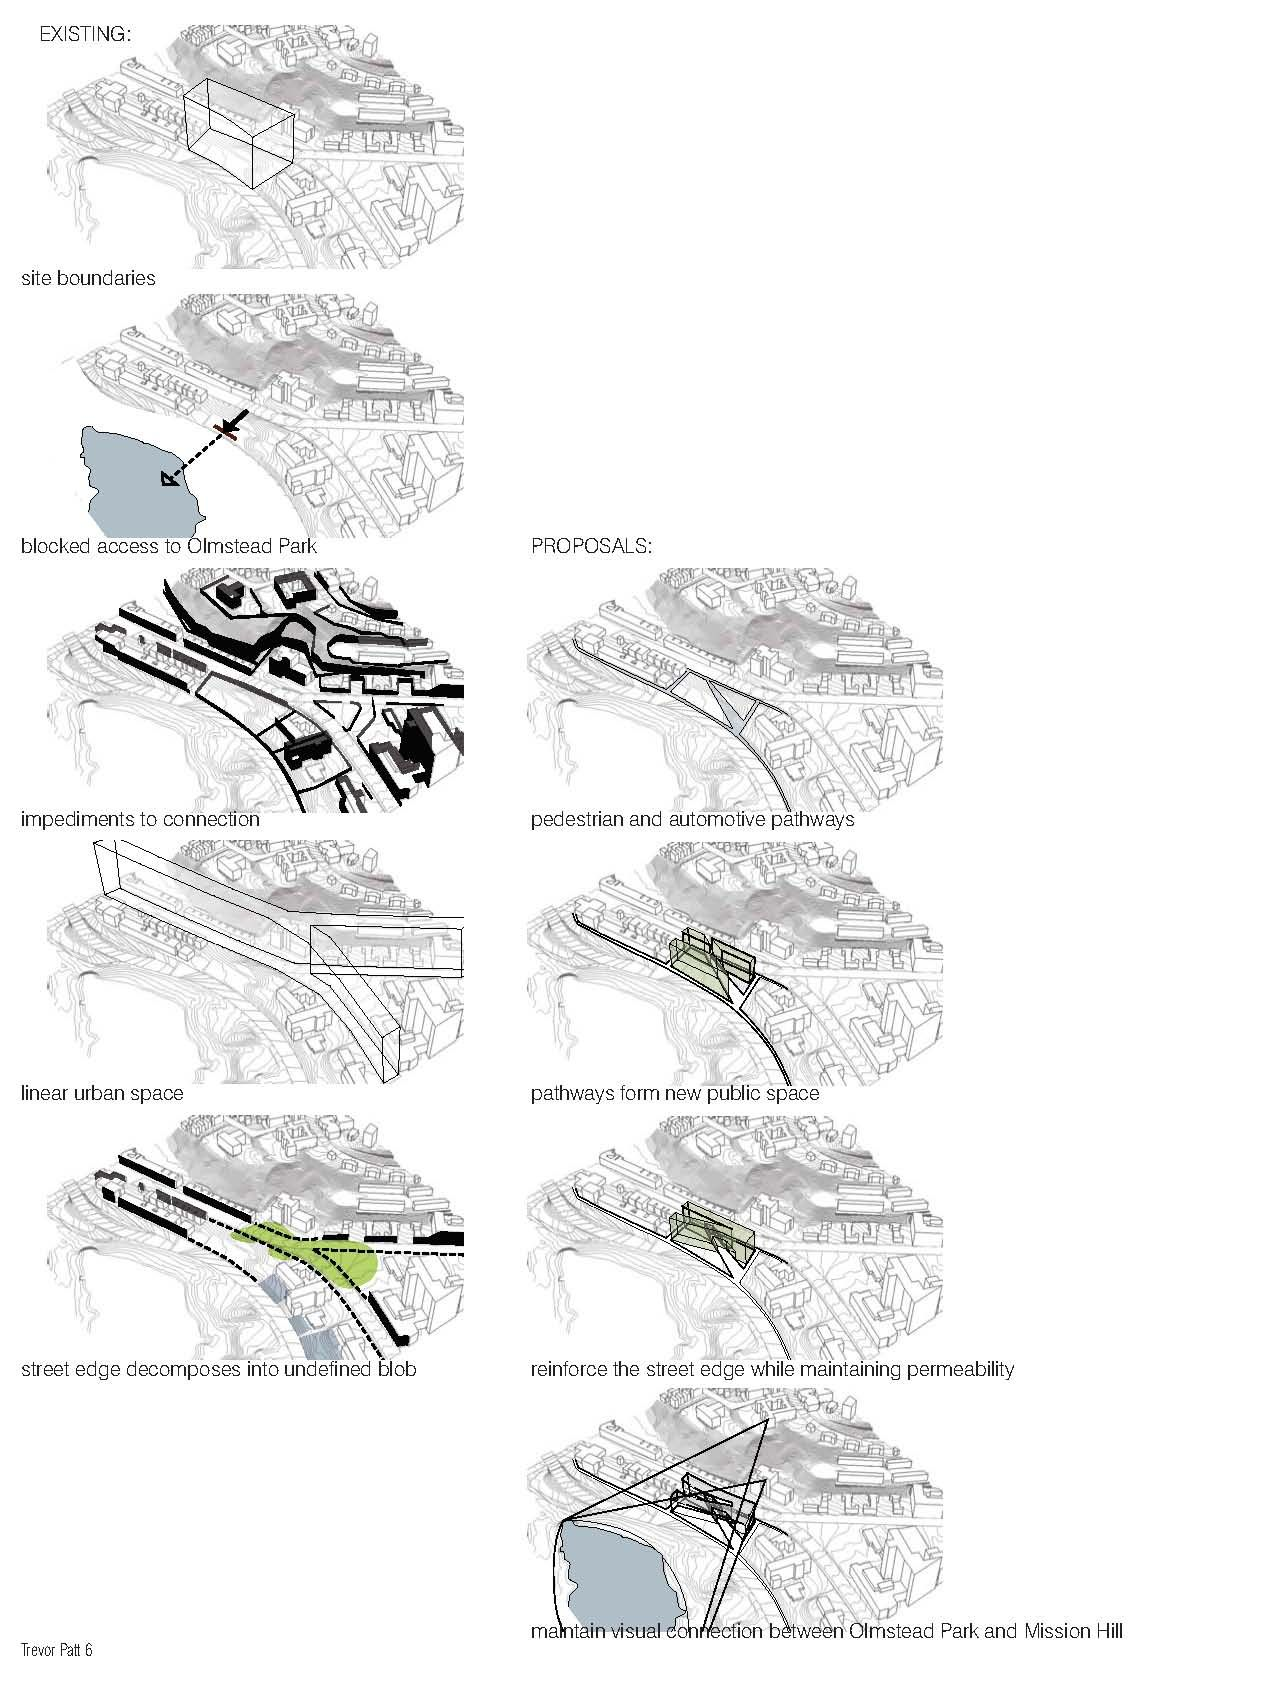 Site Strategy Focused On Cutting Through The Grain Of A Site Highly Striated By Topography